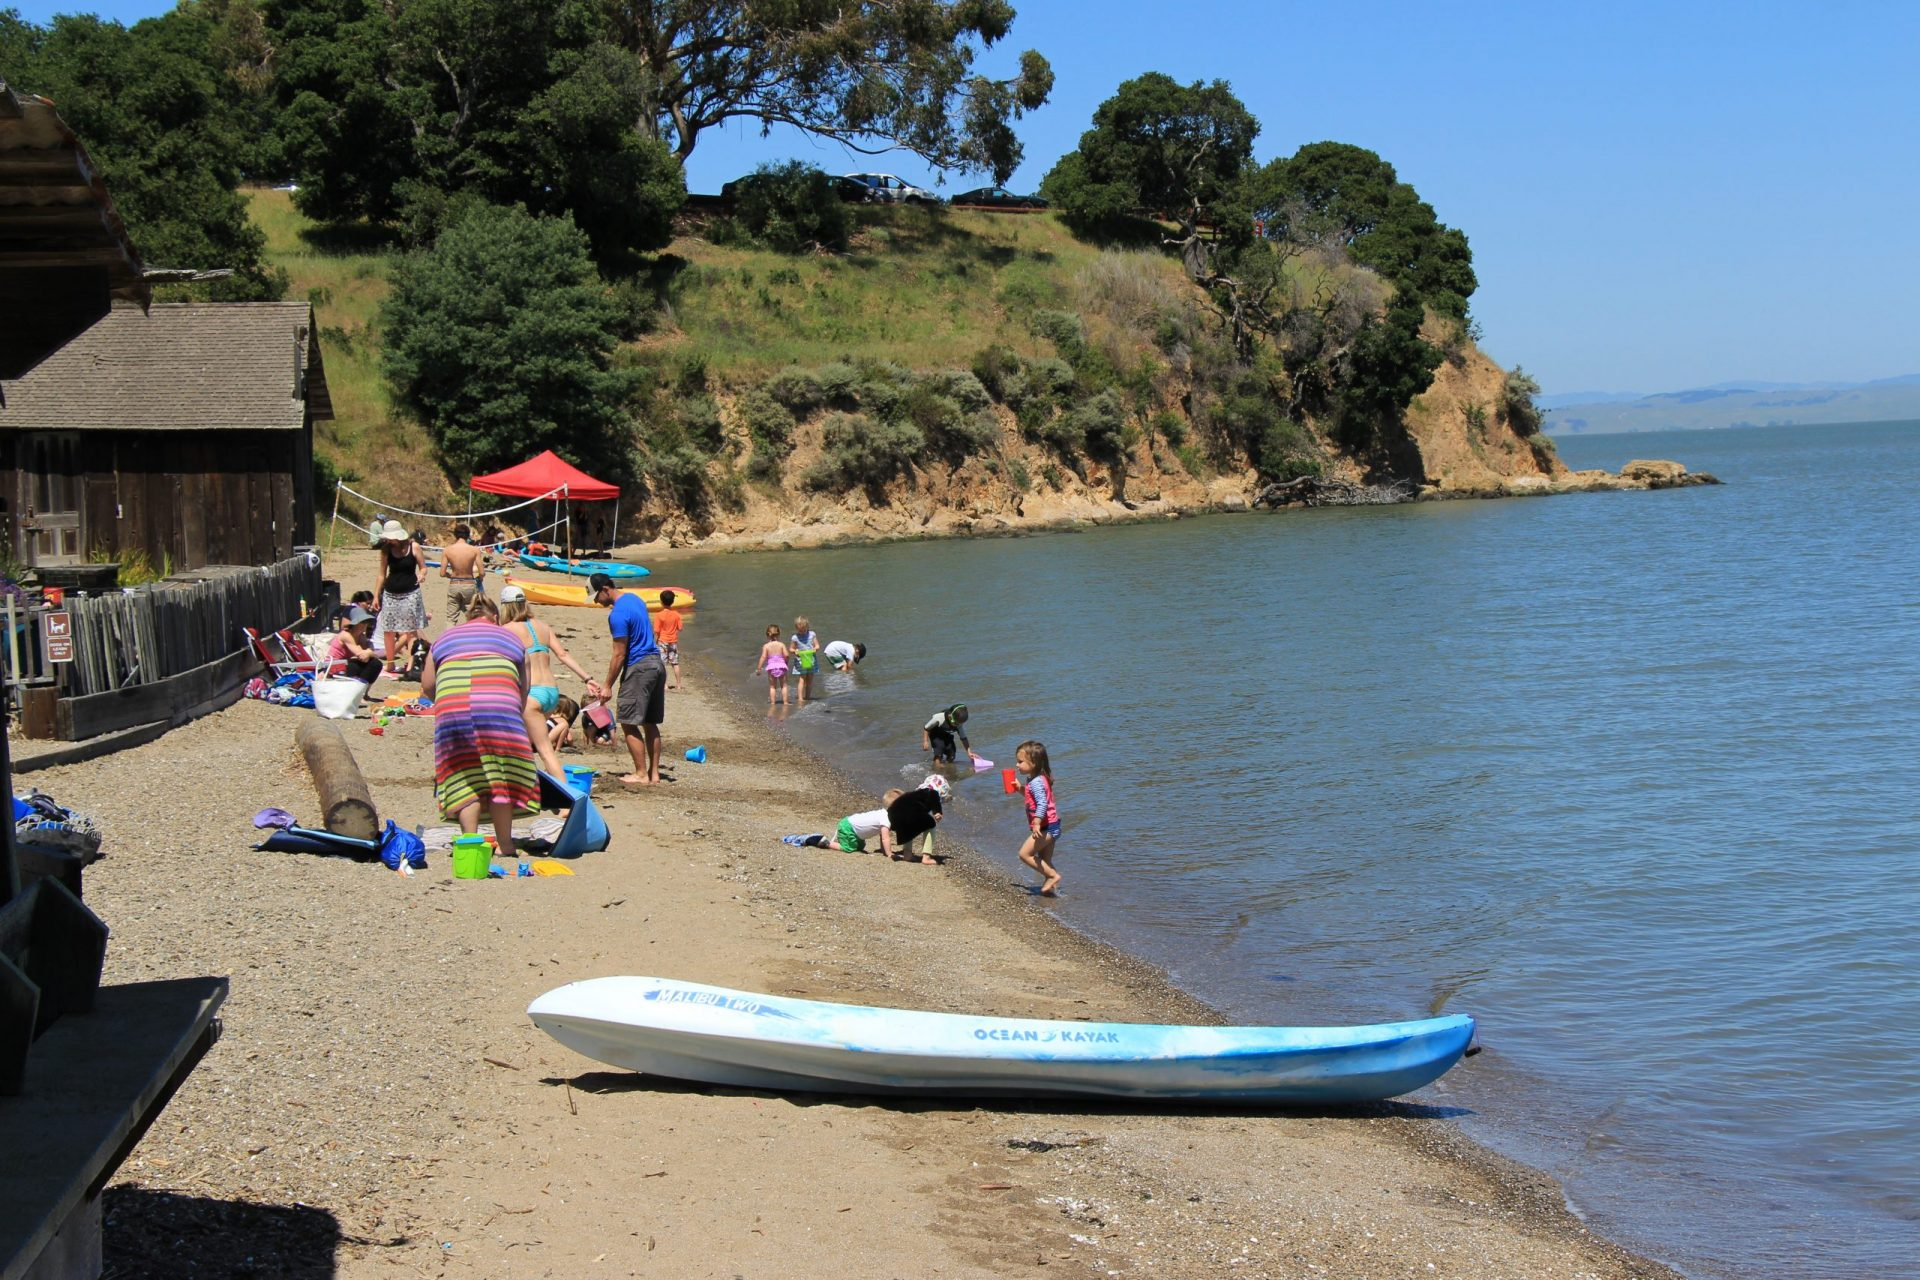 children and adults on narrow beach with kayak in foreground